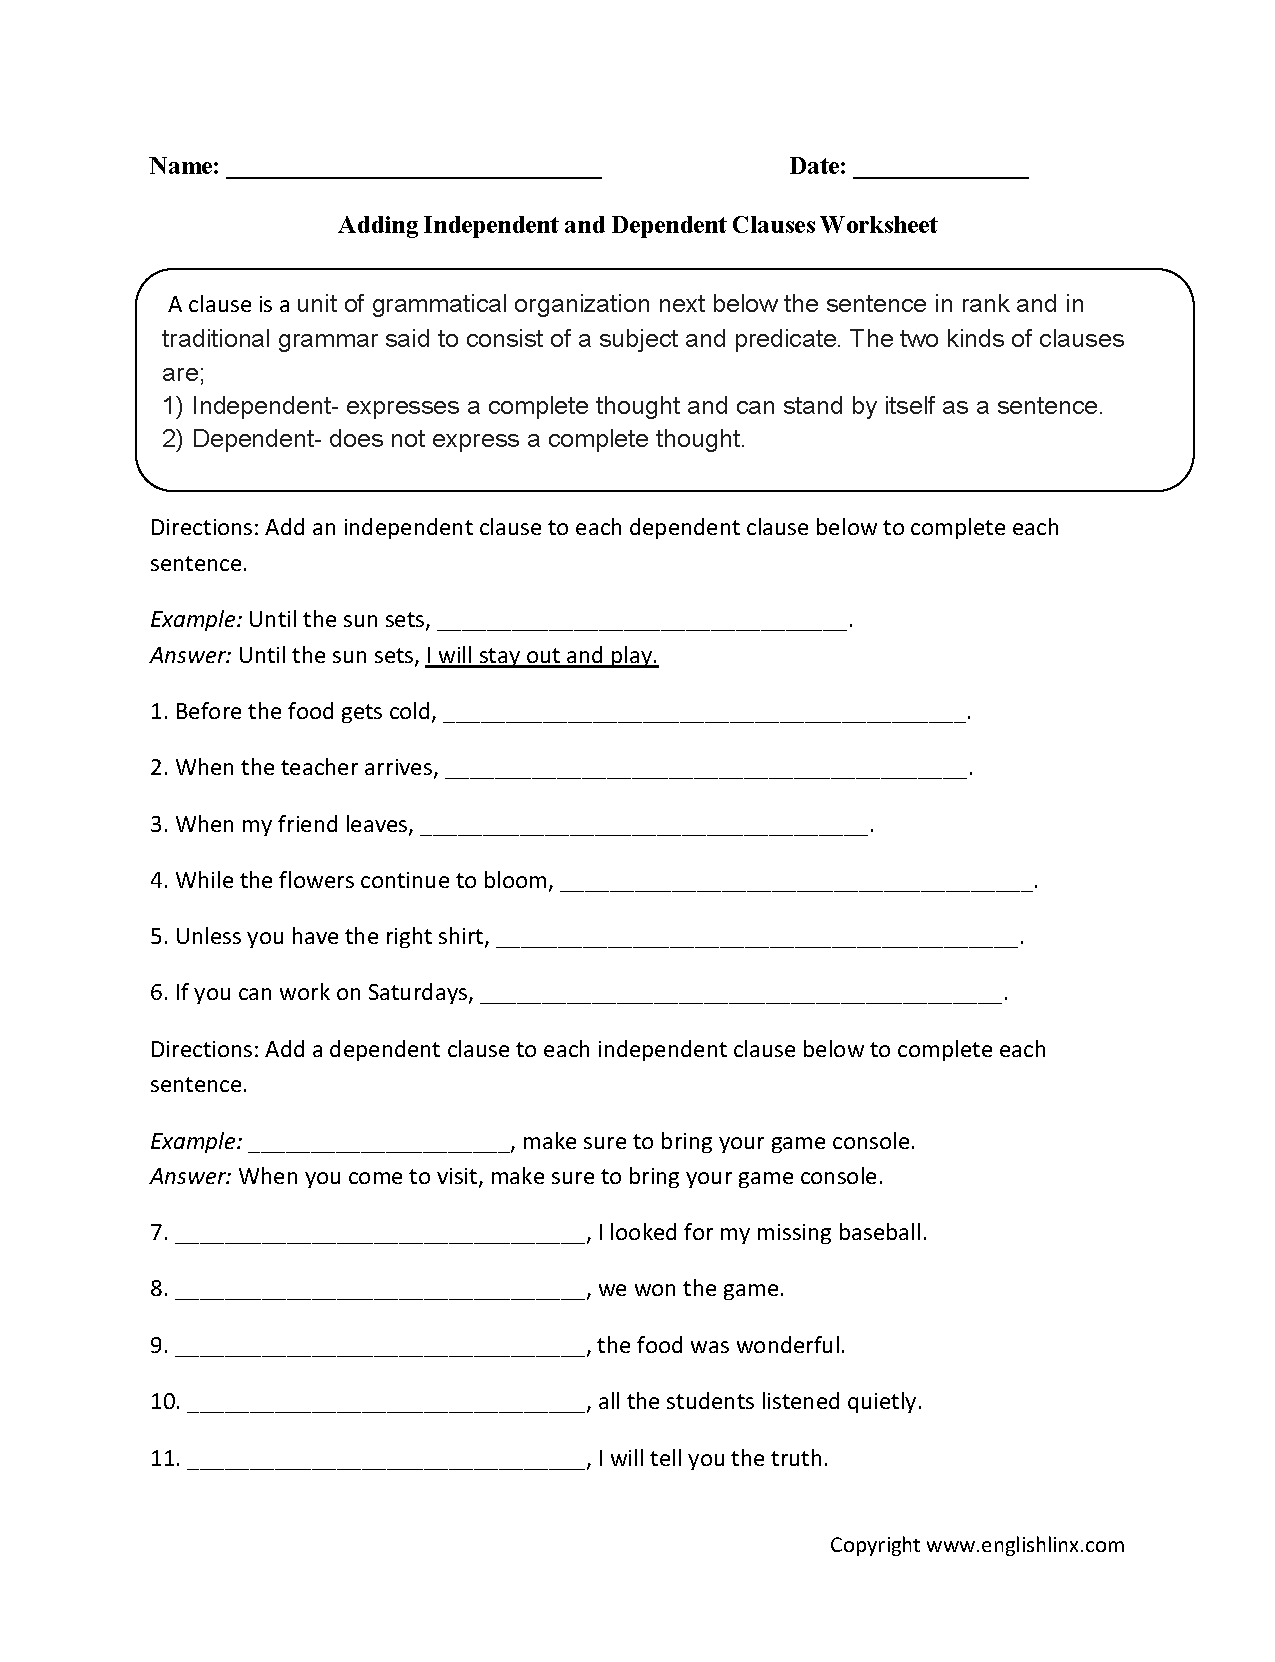 Adding Dependent and Independent Clauses Worksheet – Subordinate Clauses Worksheet